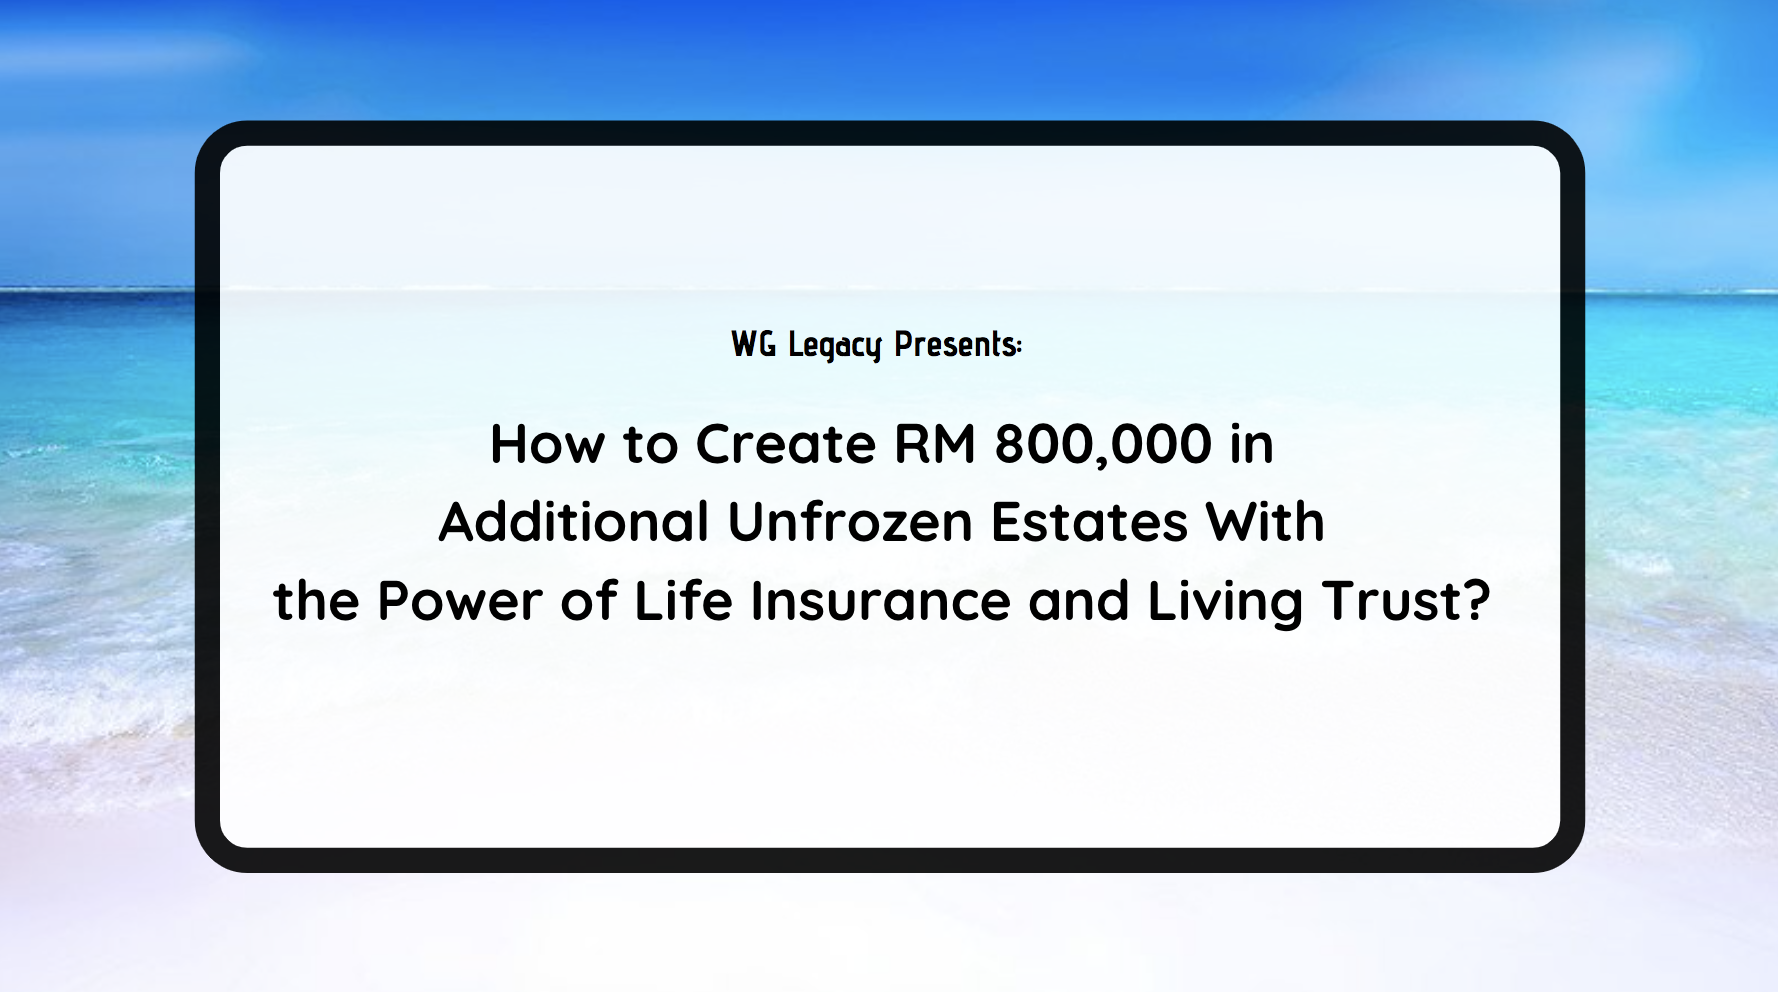 How to Create RM 800,000 in Additional Unfrozen Estates With the Power of Life Insurance and Living Trust?